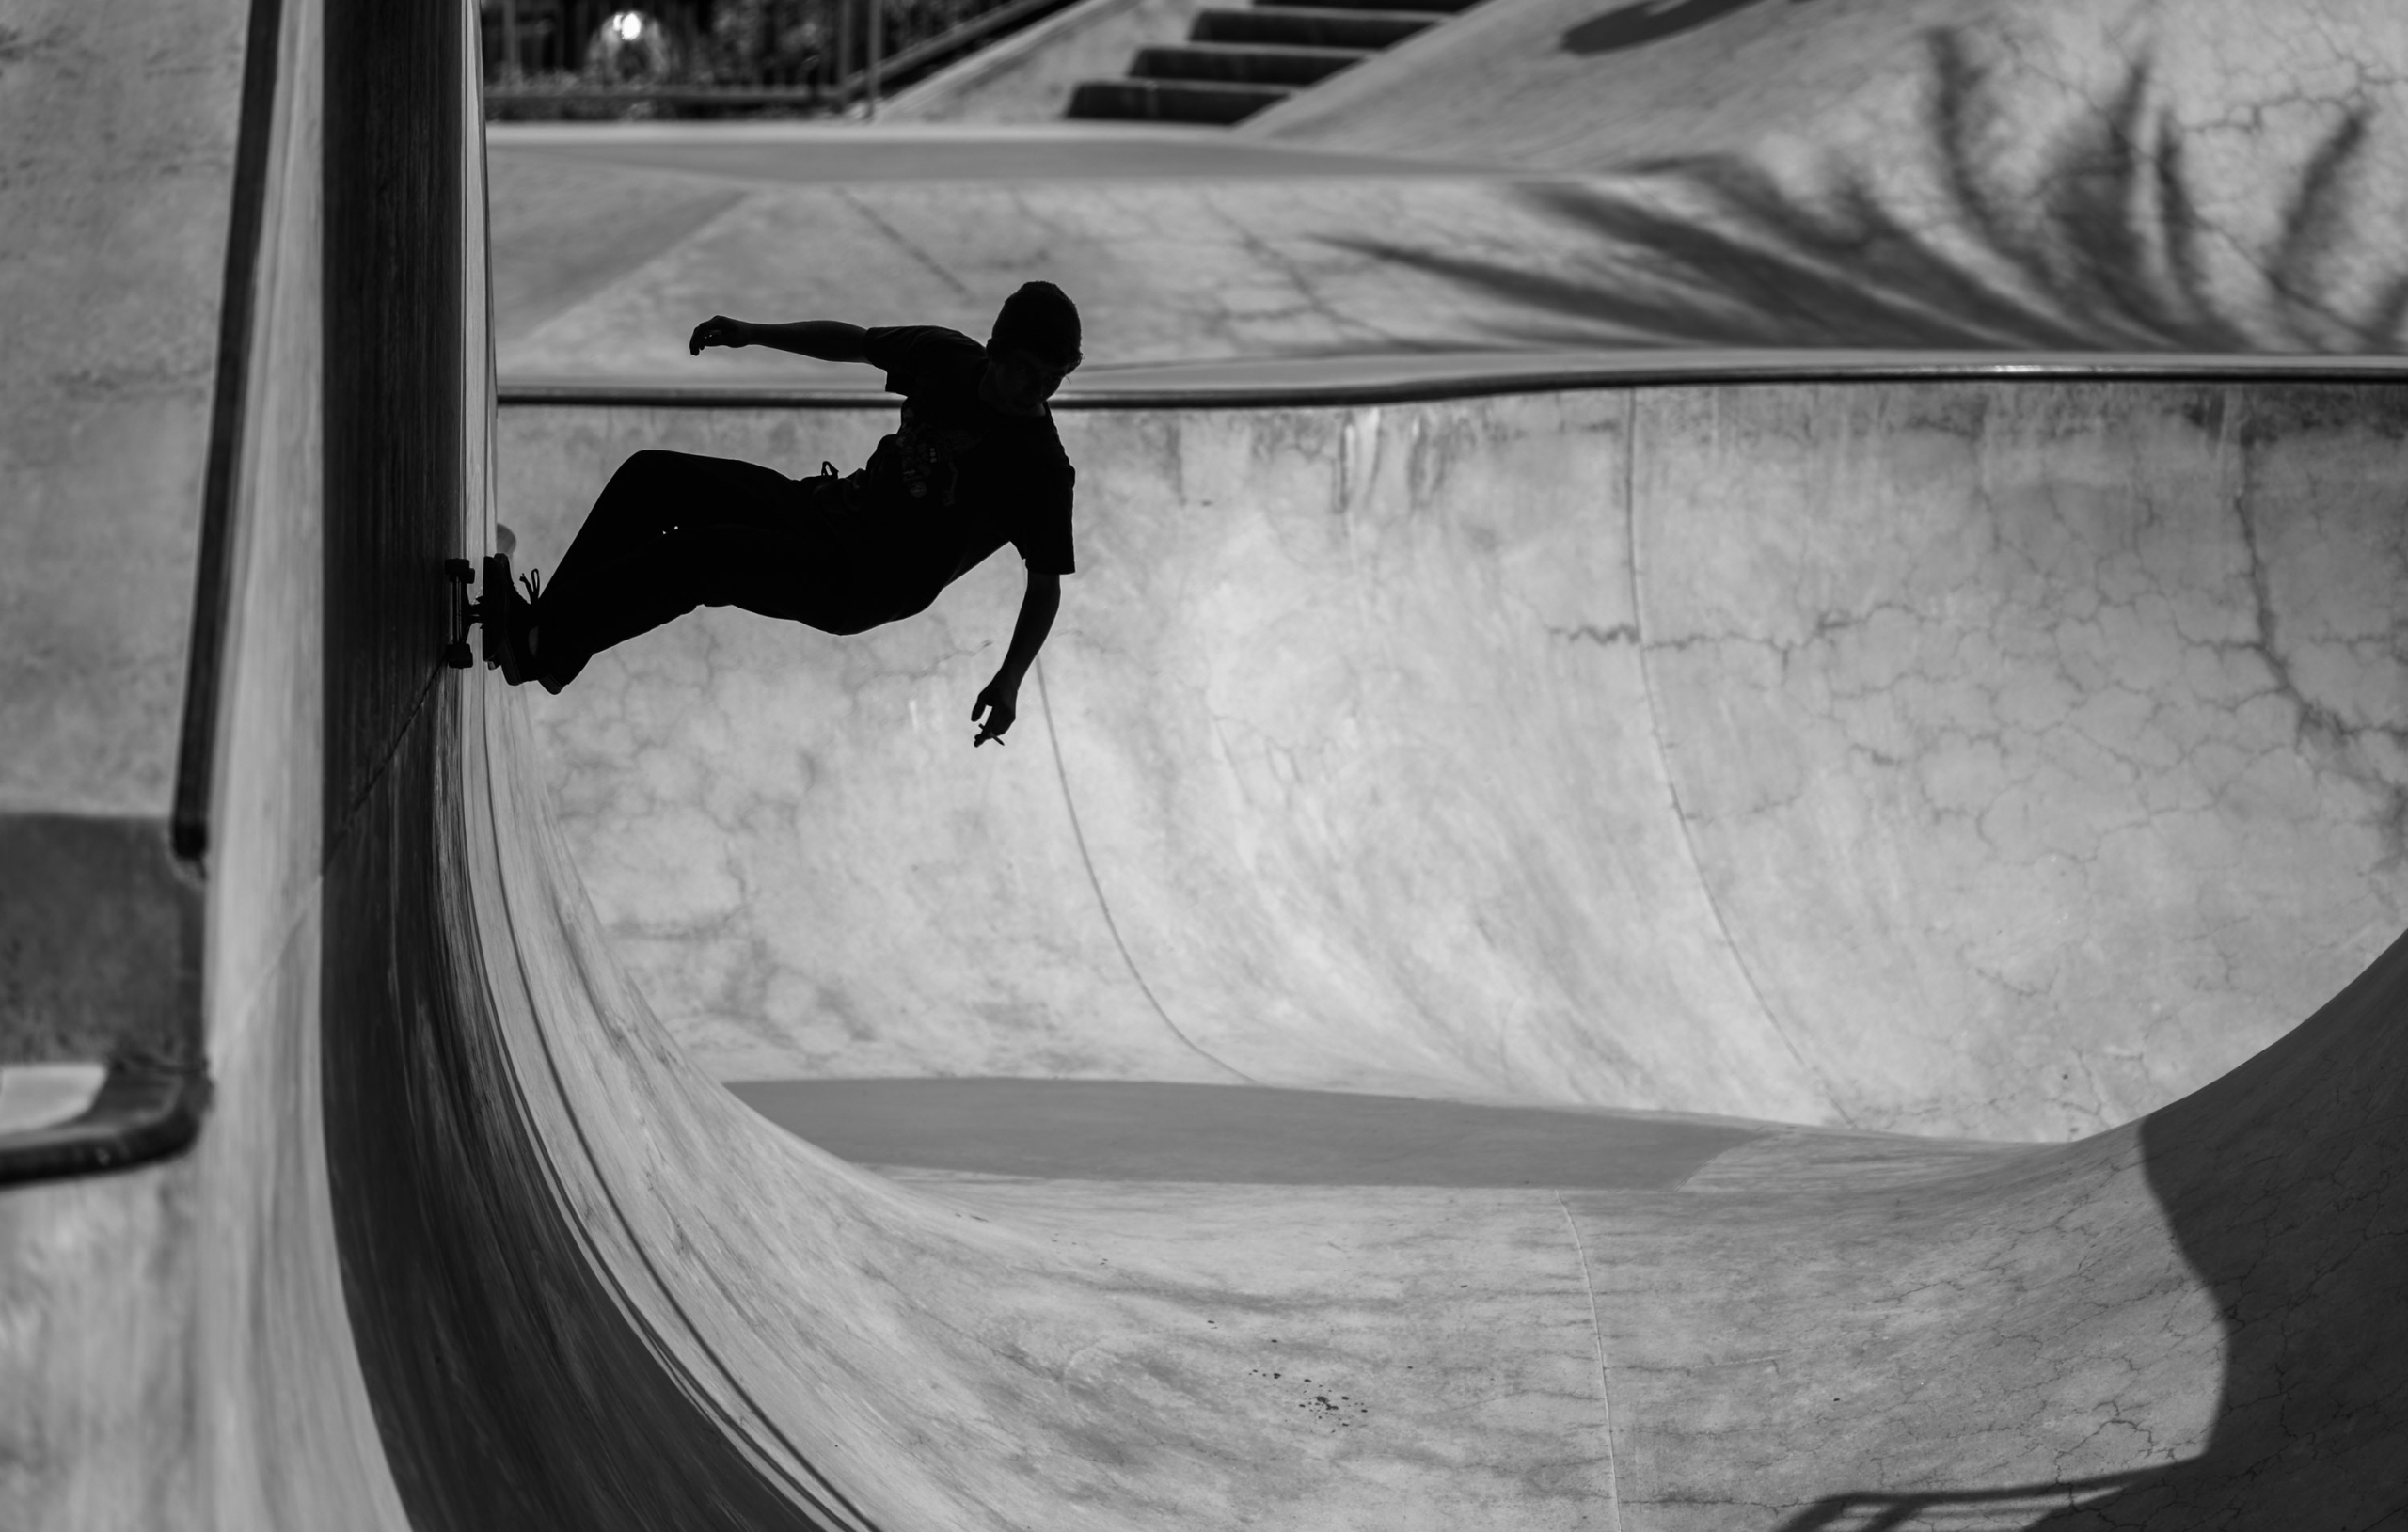 skate park days - blackandwhite - ben-staley | ello